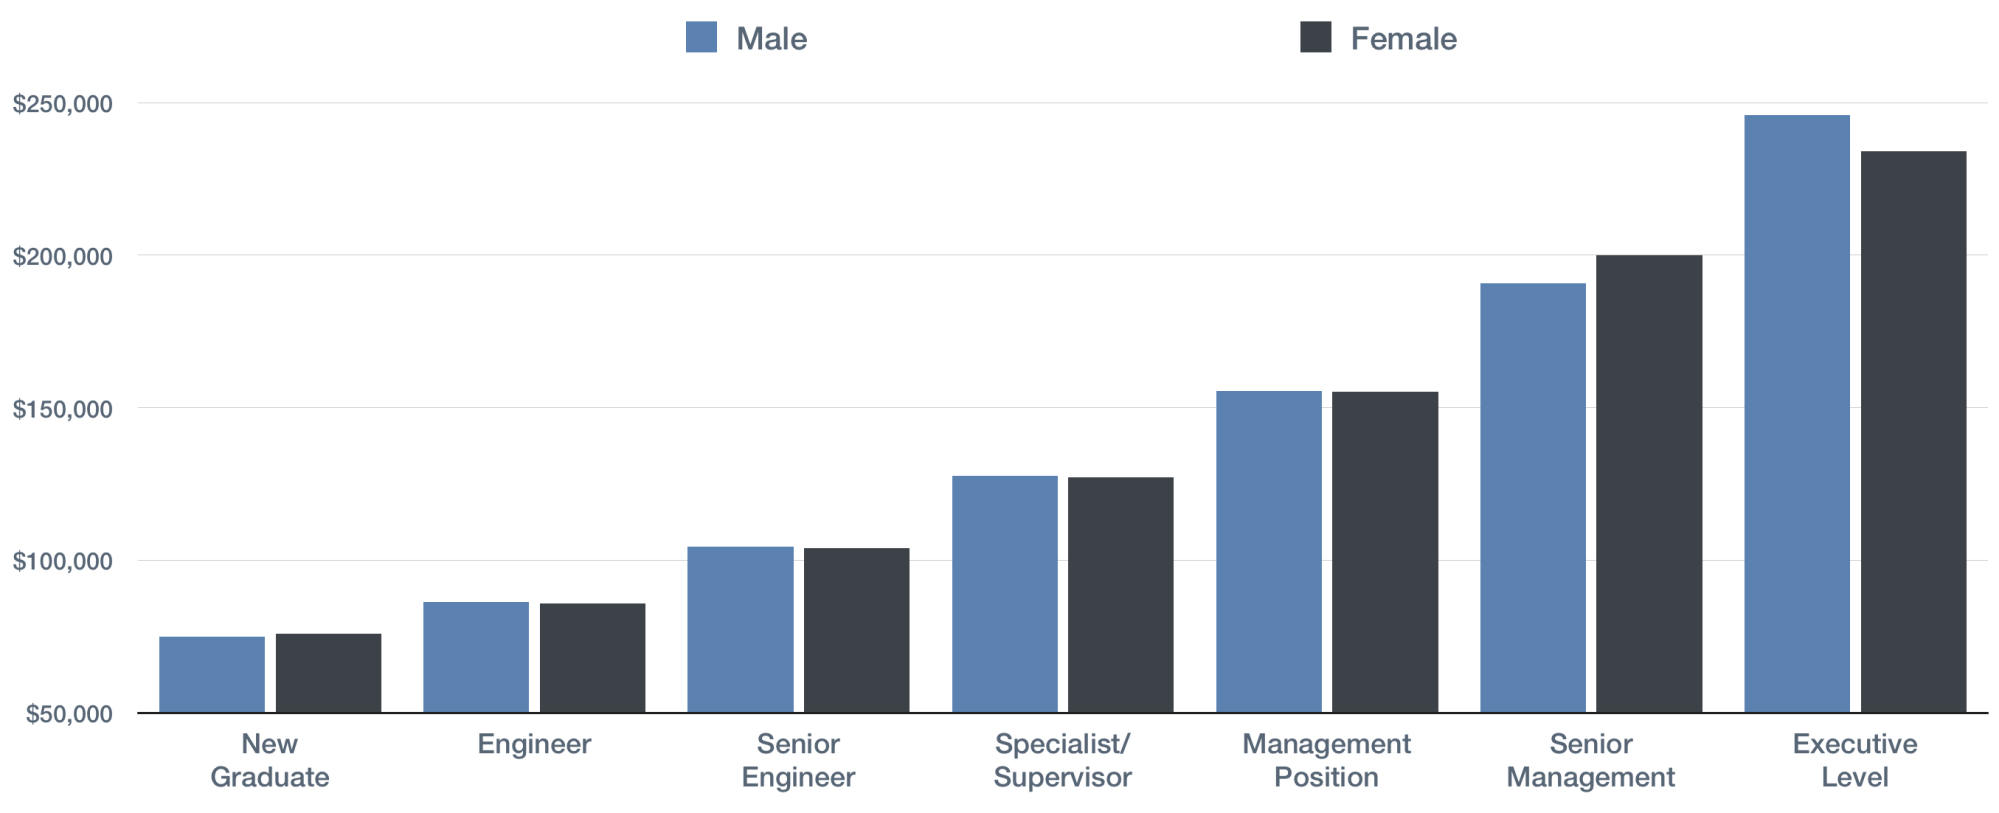 COMPARISON OF BASE SALARIES FOR ENGINEERS (SOURCE: APEGA 2015 ANNUAL SALARY SURVEY)